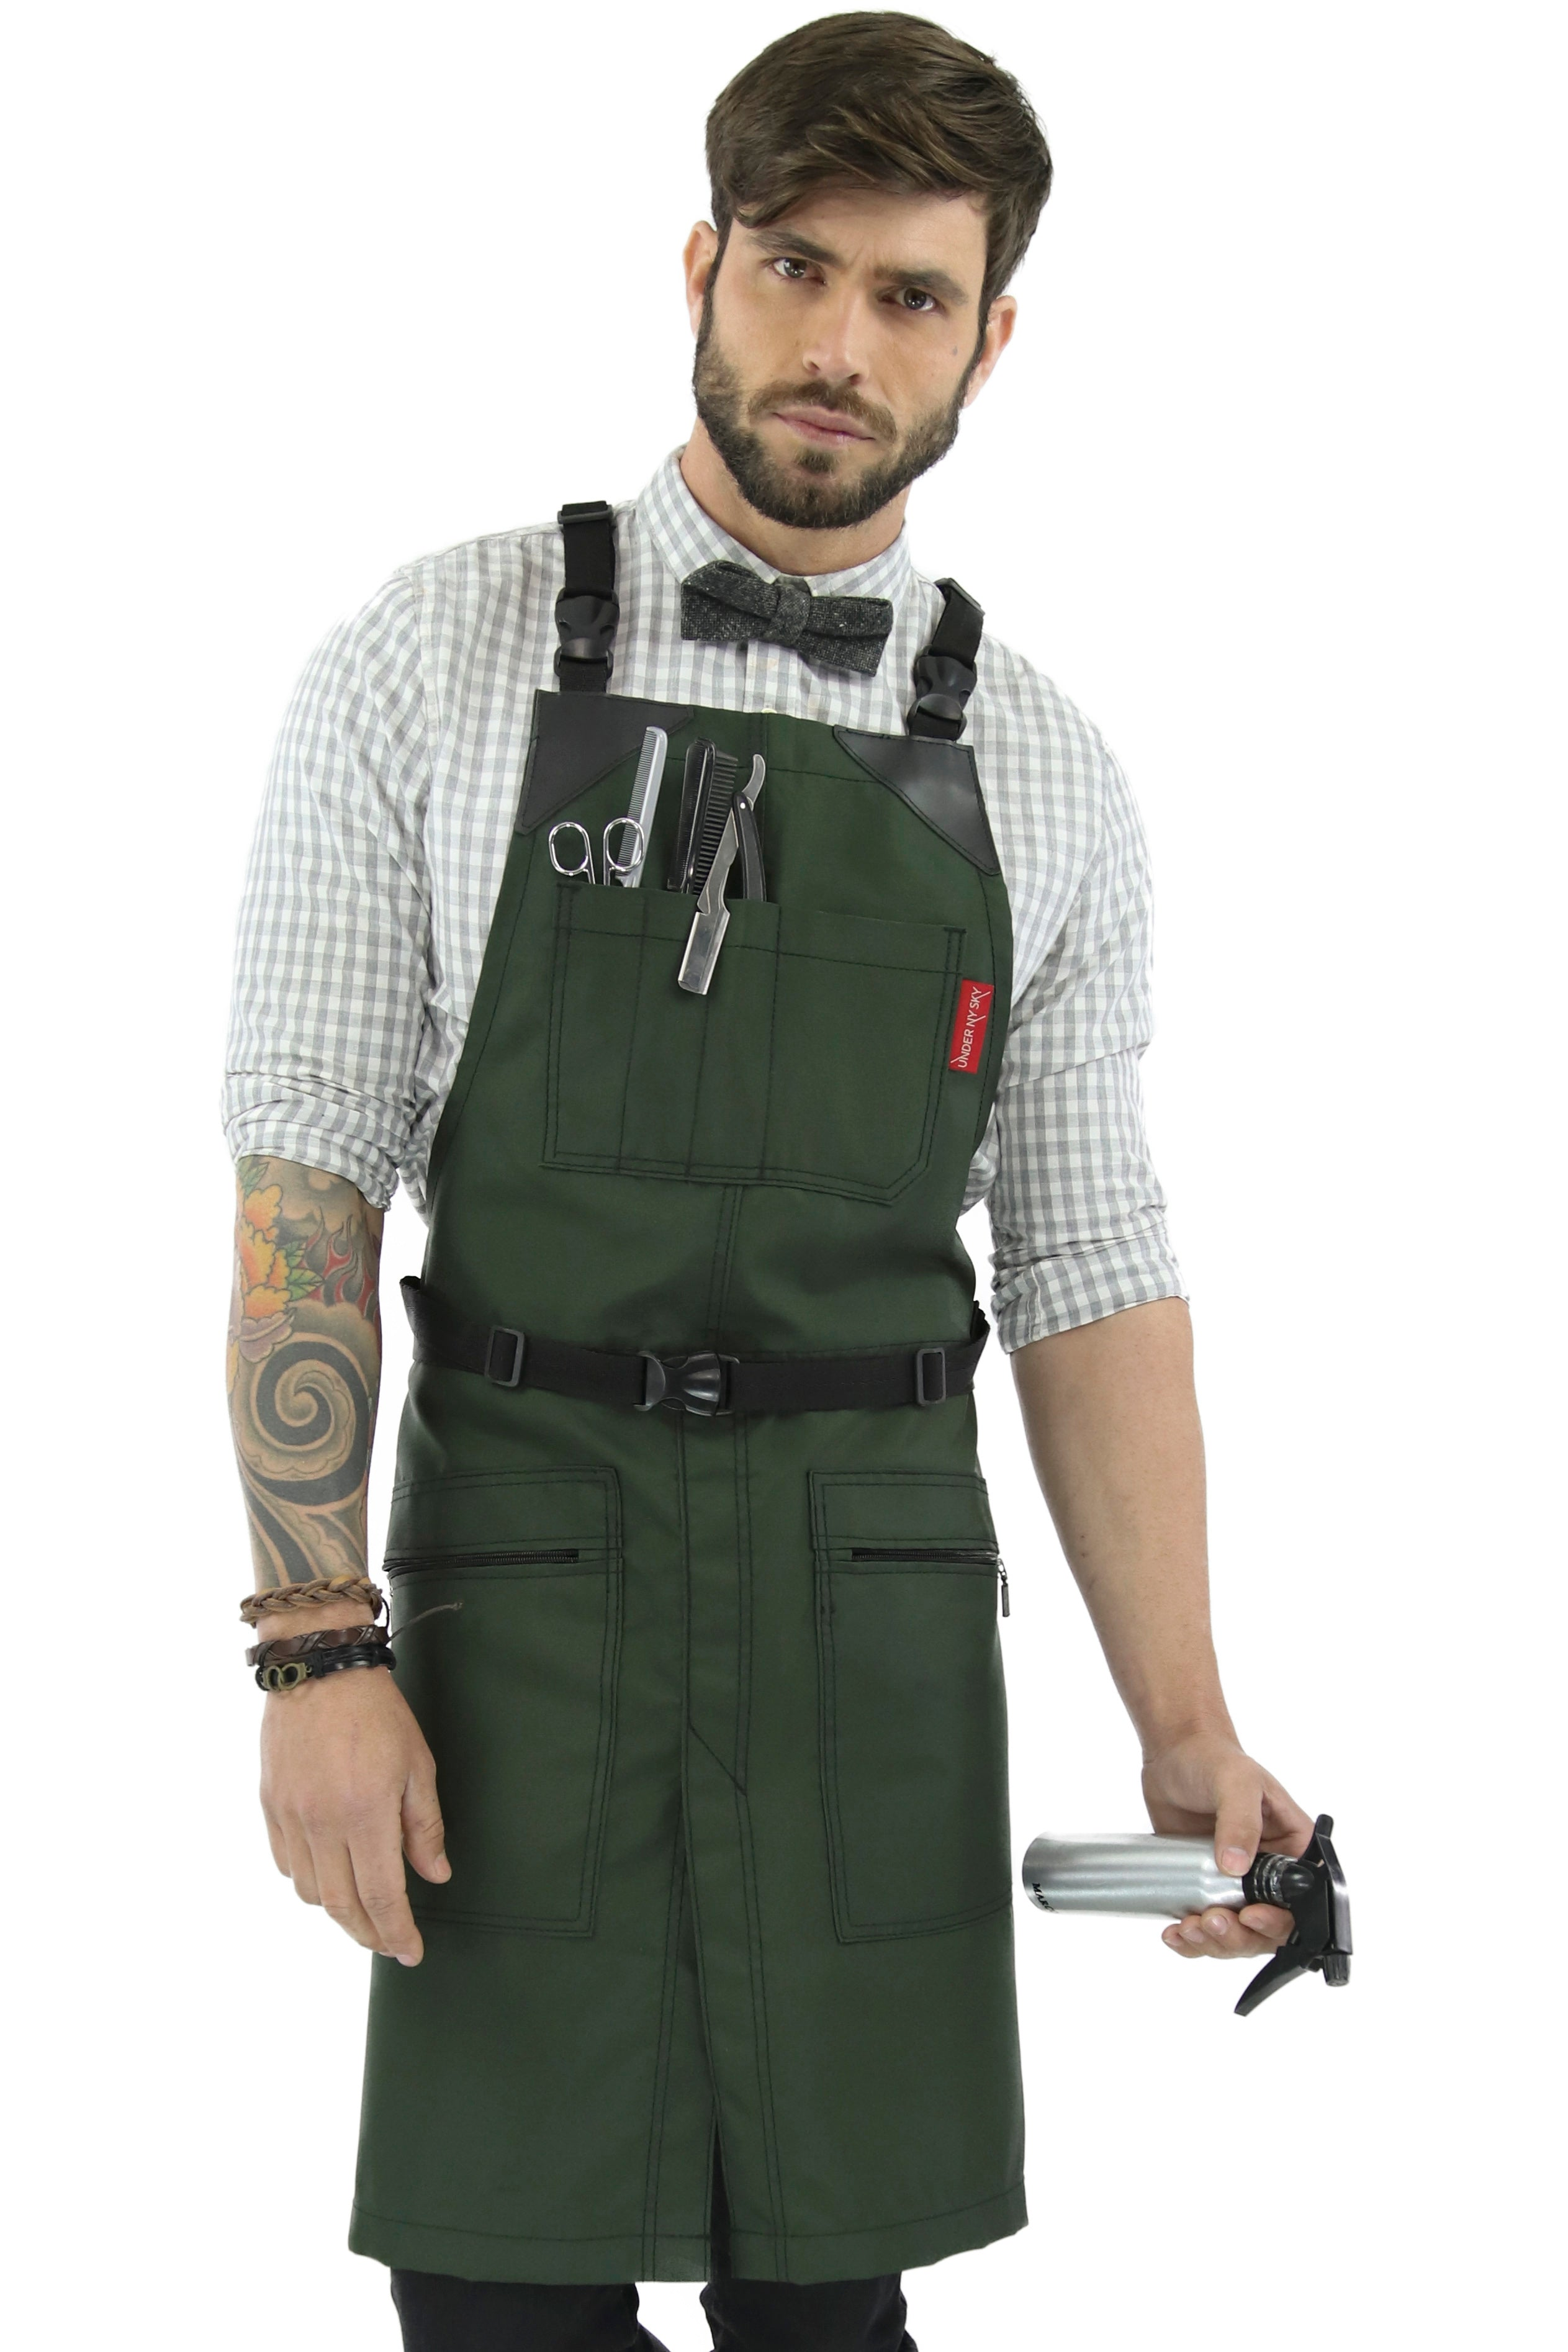 Barber Chemical Waterproof Cross-back Apron - Green Oxford Canvas